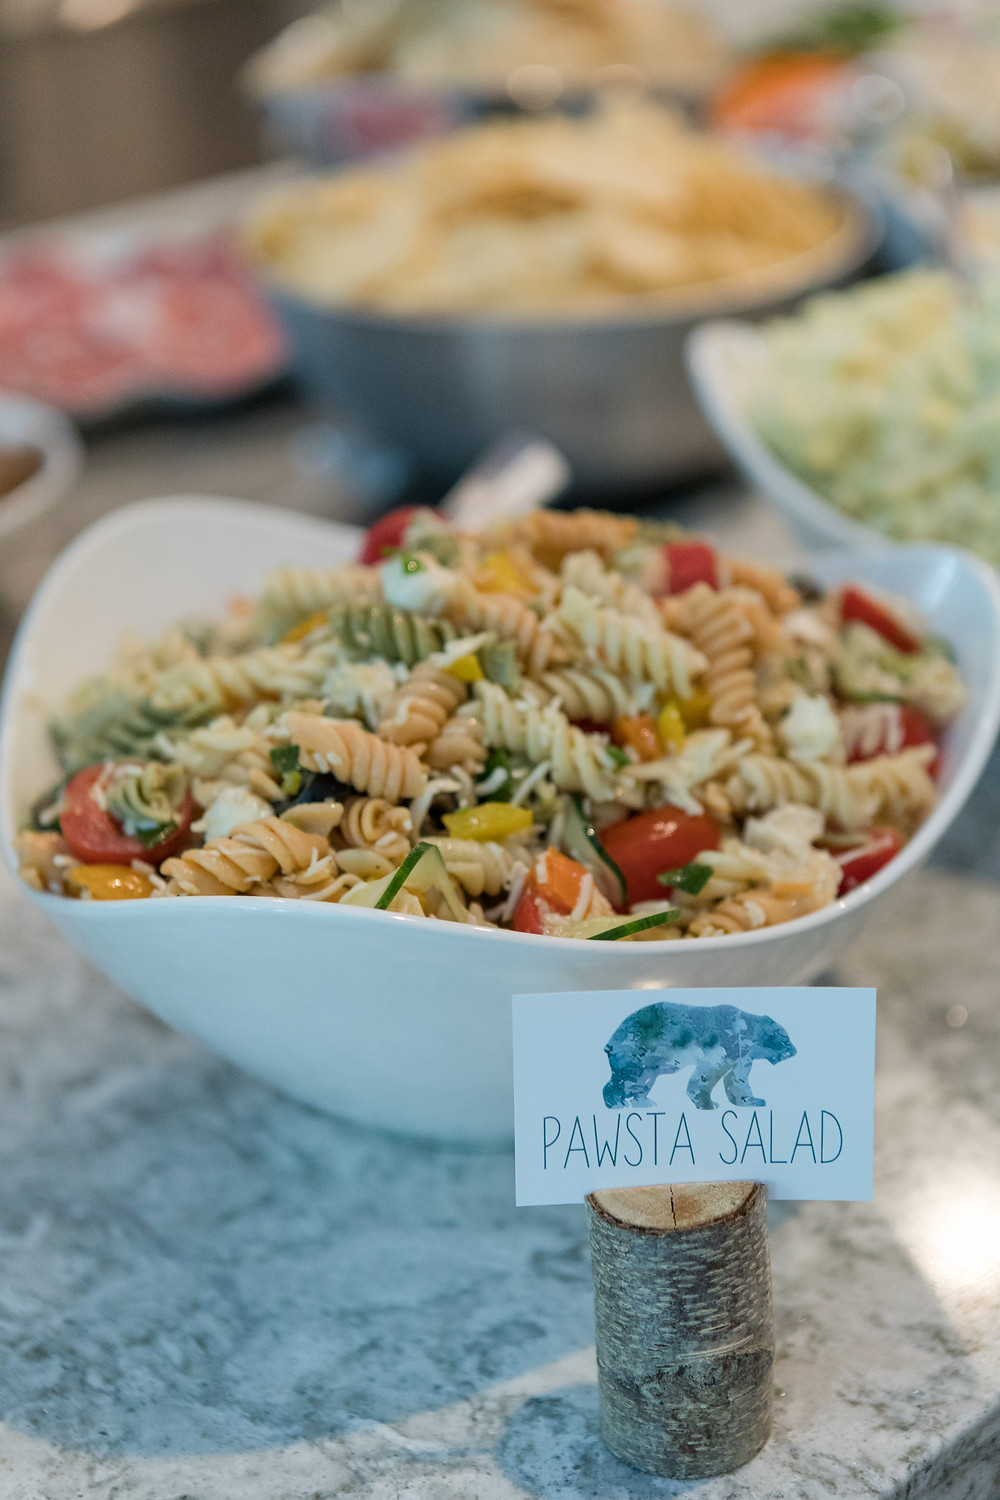 Pawsta Pasta Salad Party Food - Wild One Smash Cake Photo Session - One Wild Year - Boy's 1st Birthday Party - Ideas, inspiration, decor, party food and menu, kids activities and games, cake smash photo session, bear theme, wild one wilderness tree teepee outdoor theme, decorations, cake, cookies, and more!